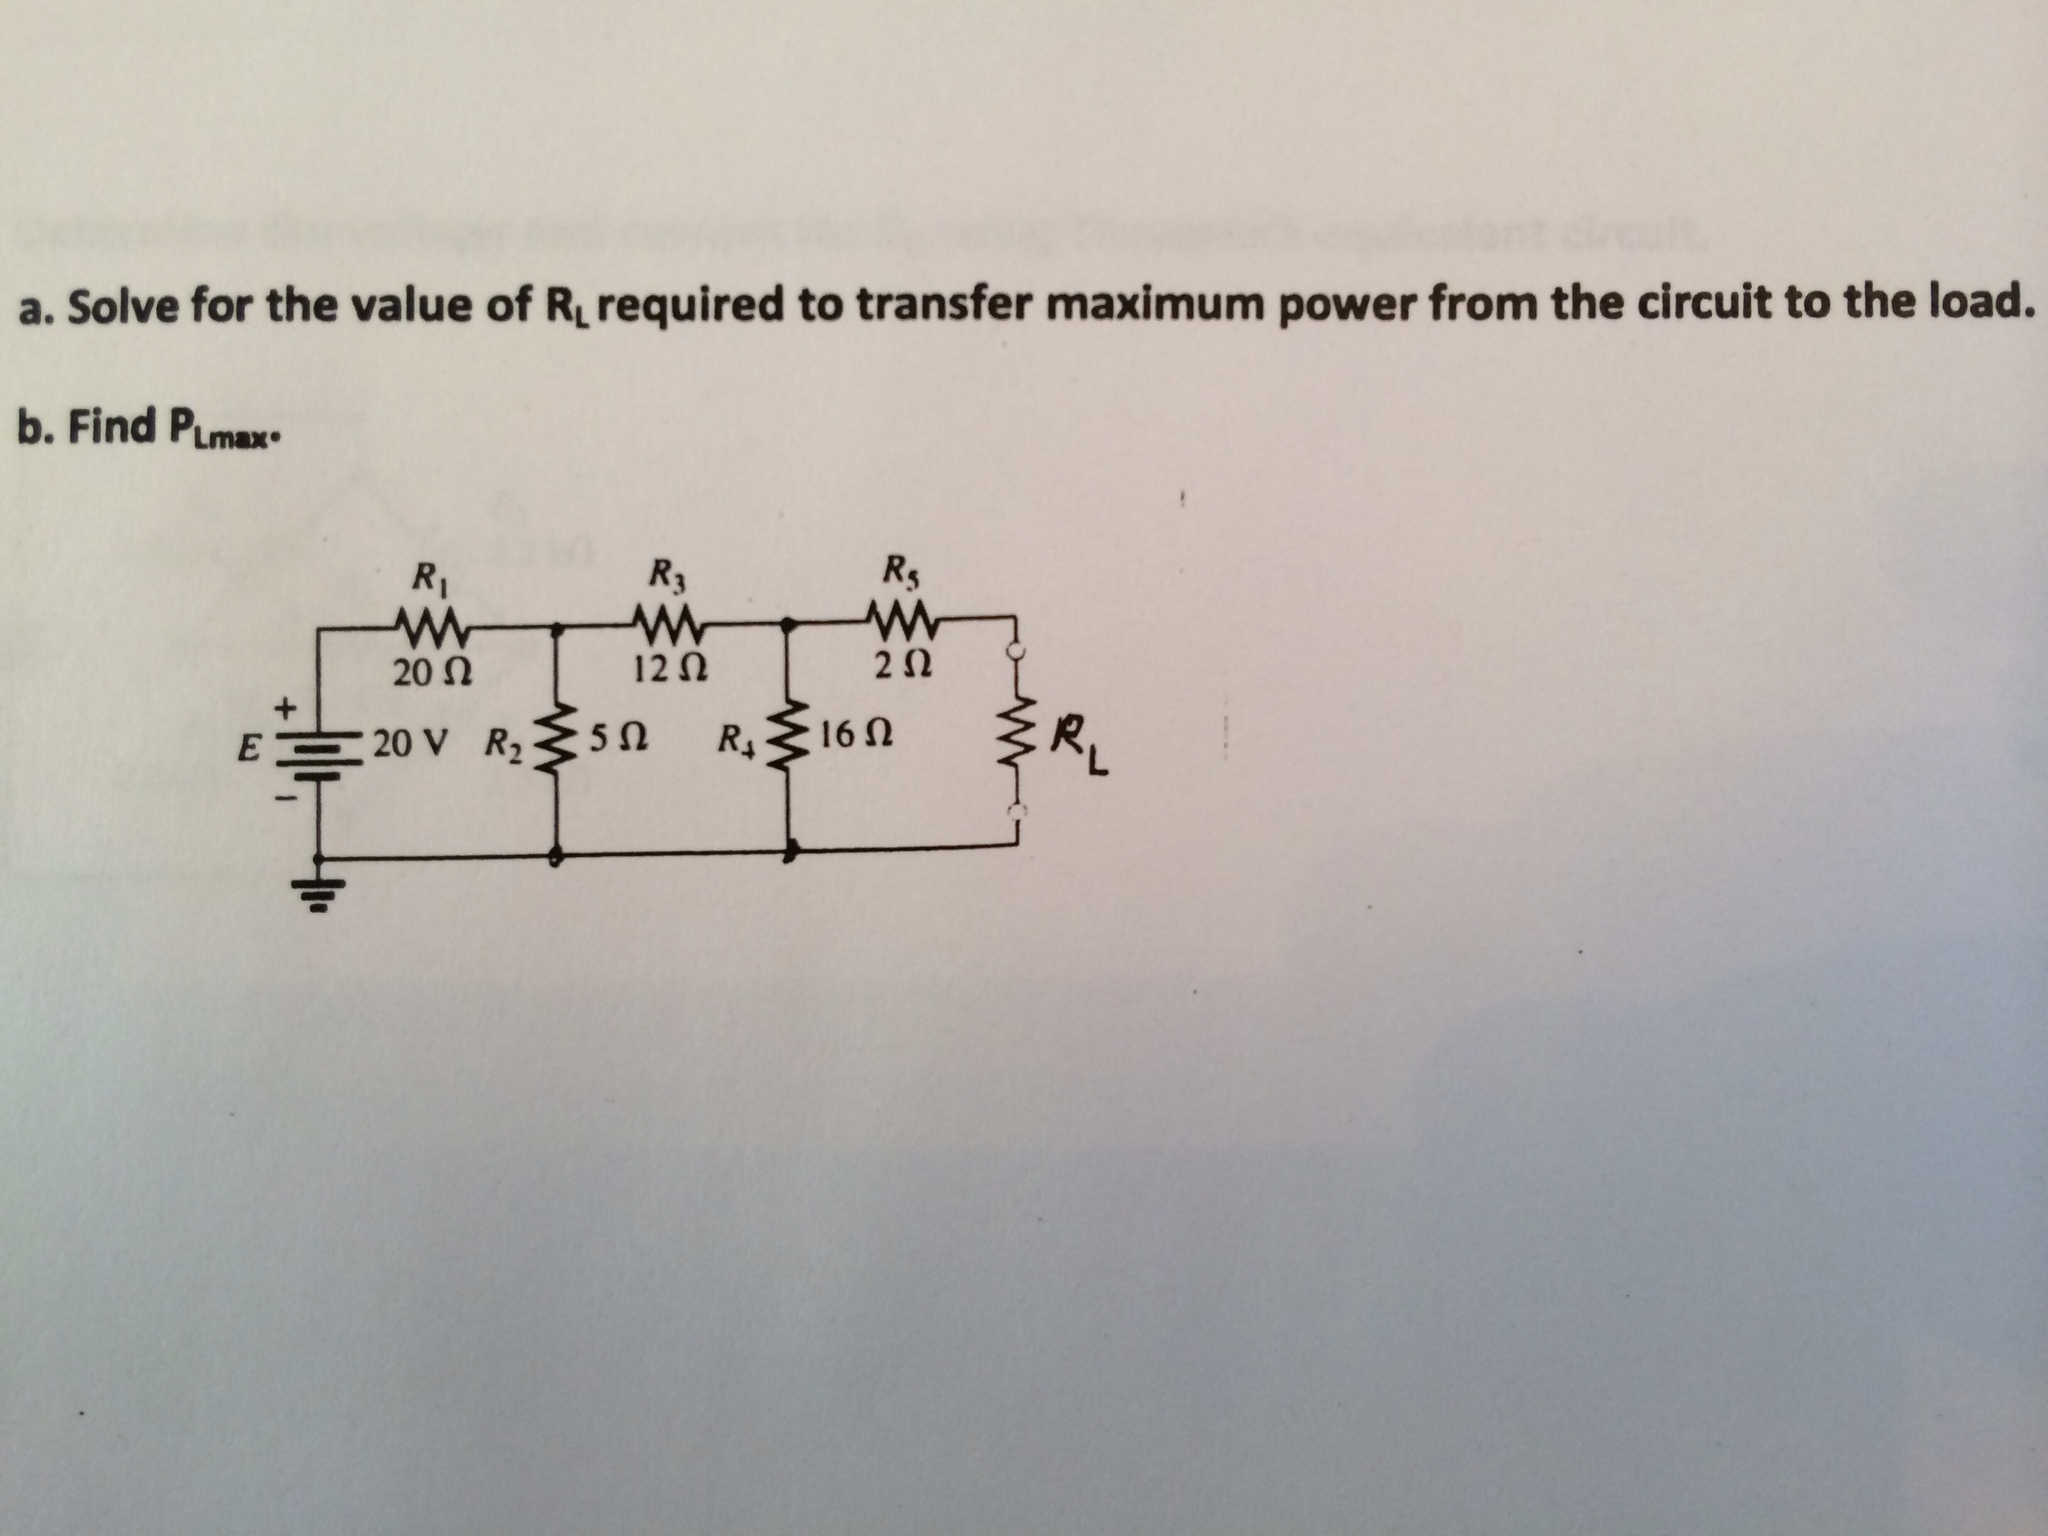 Solve for the value of RL required to transfer max